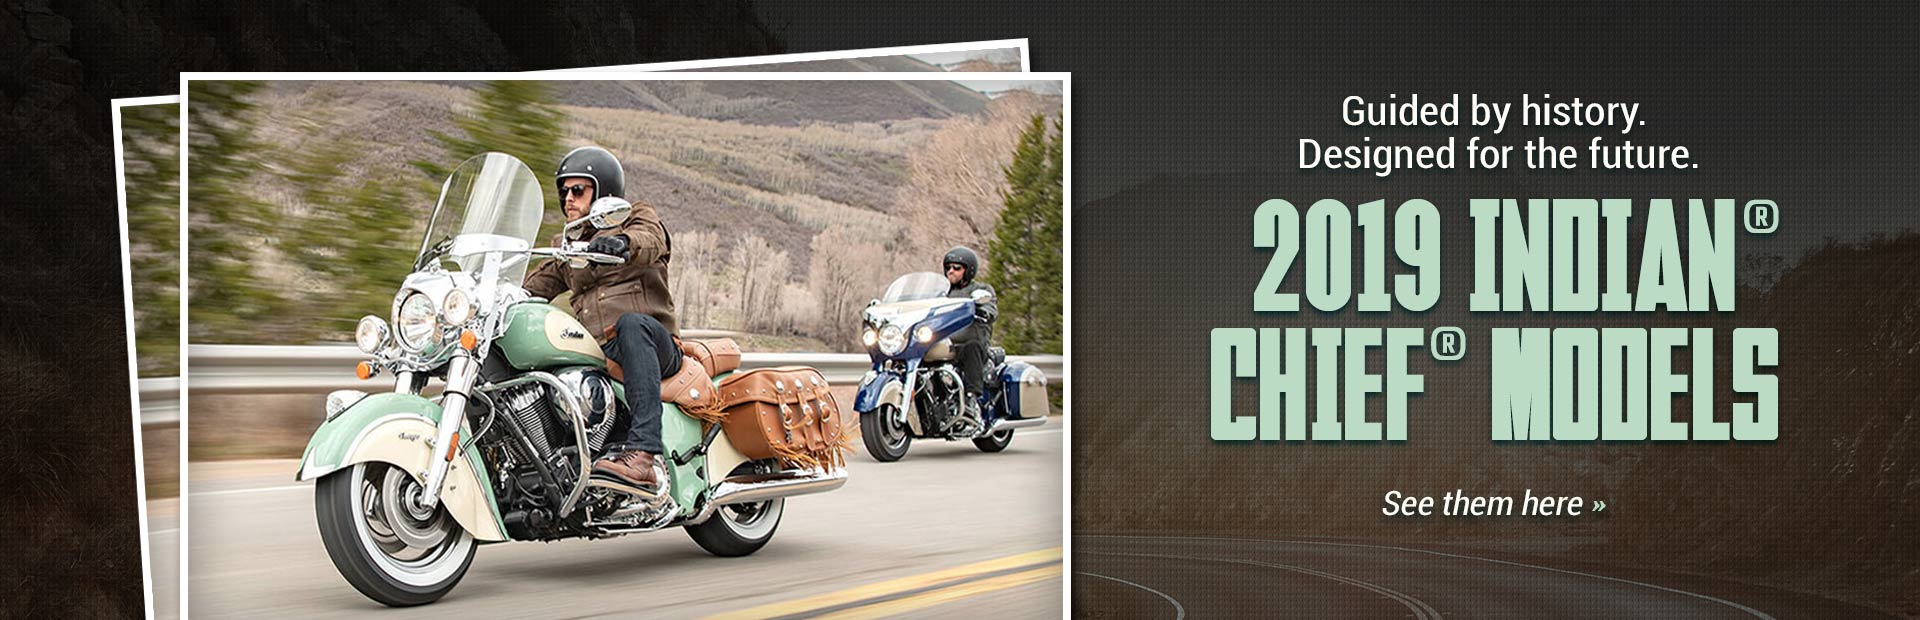 2019 Indian® Chief®: Click here to view the models.